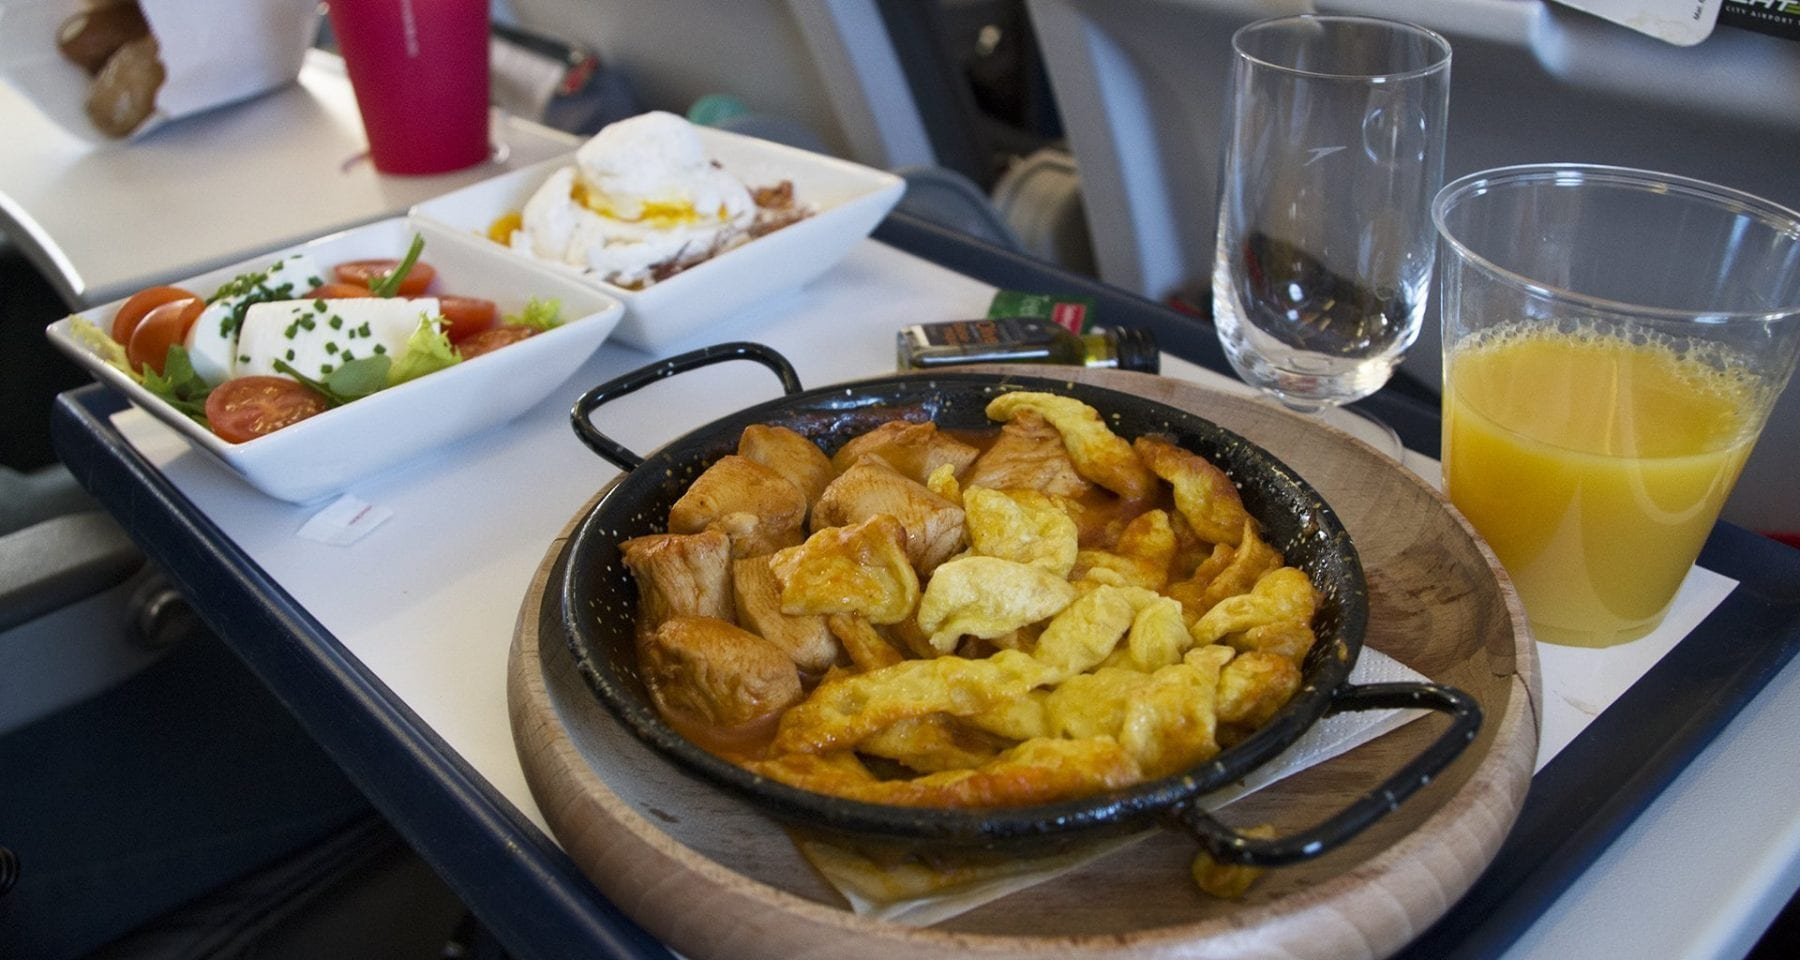 austrian airlines chicken meal pre order upgrade do&co